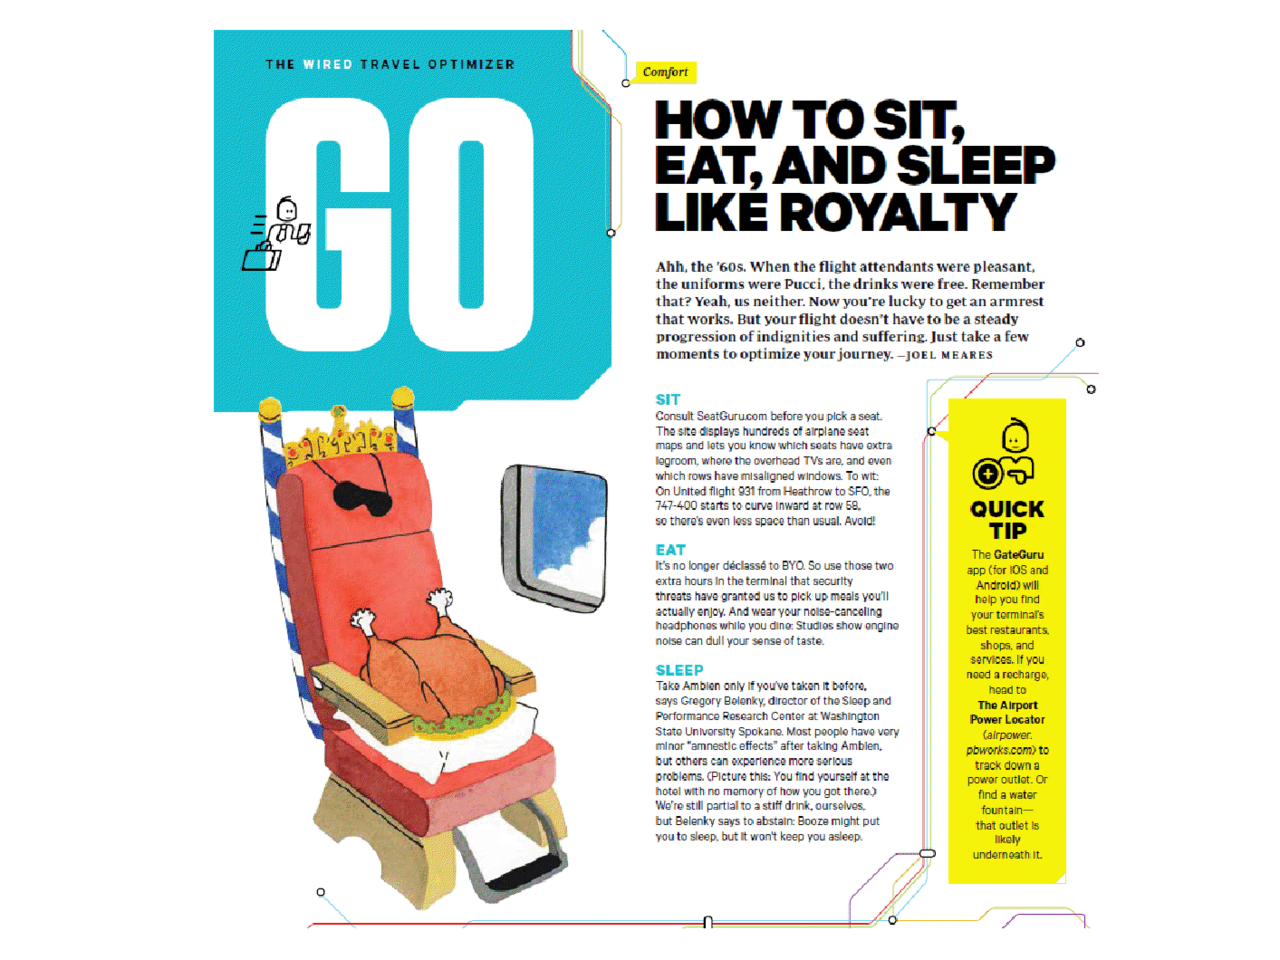 Love the GateGuru coverage in this month's Wired!